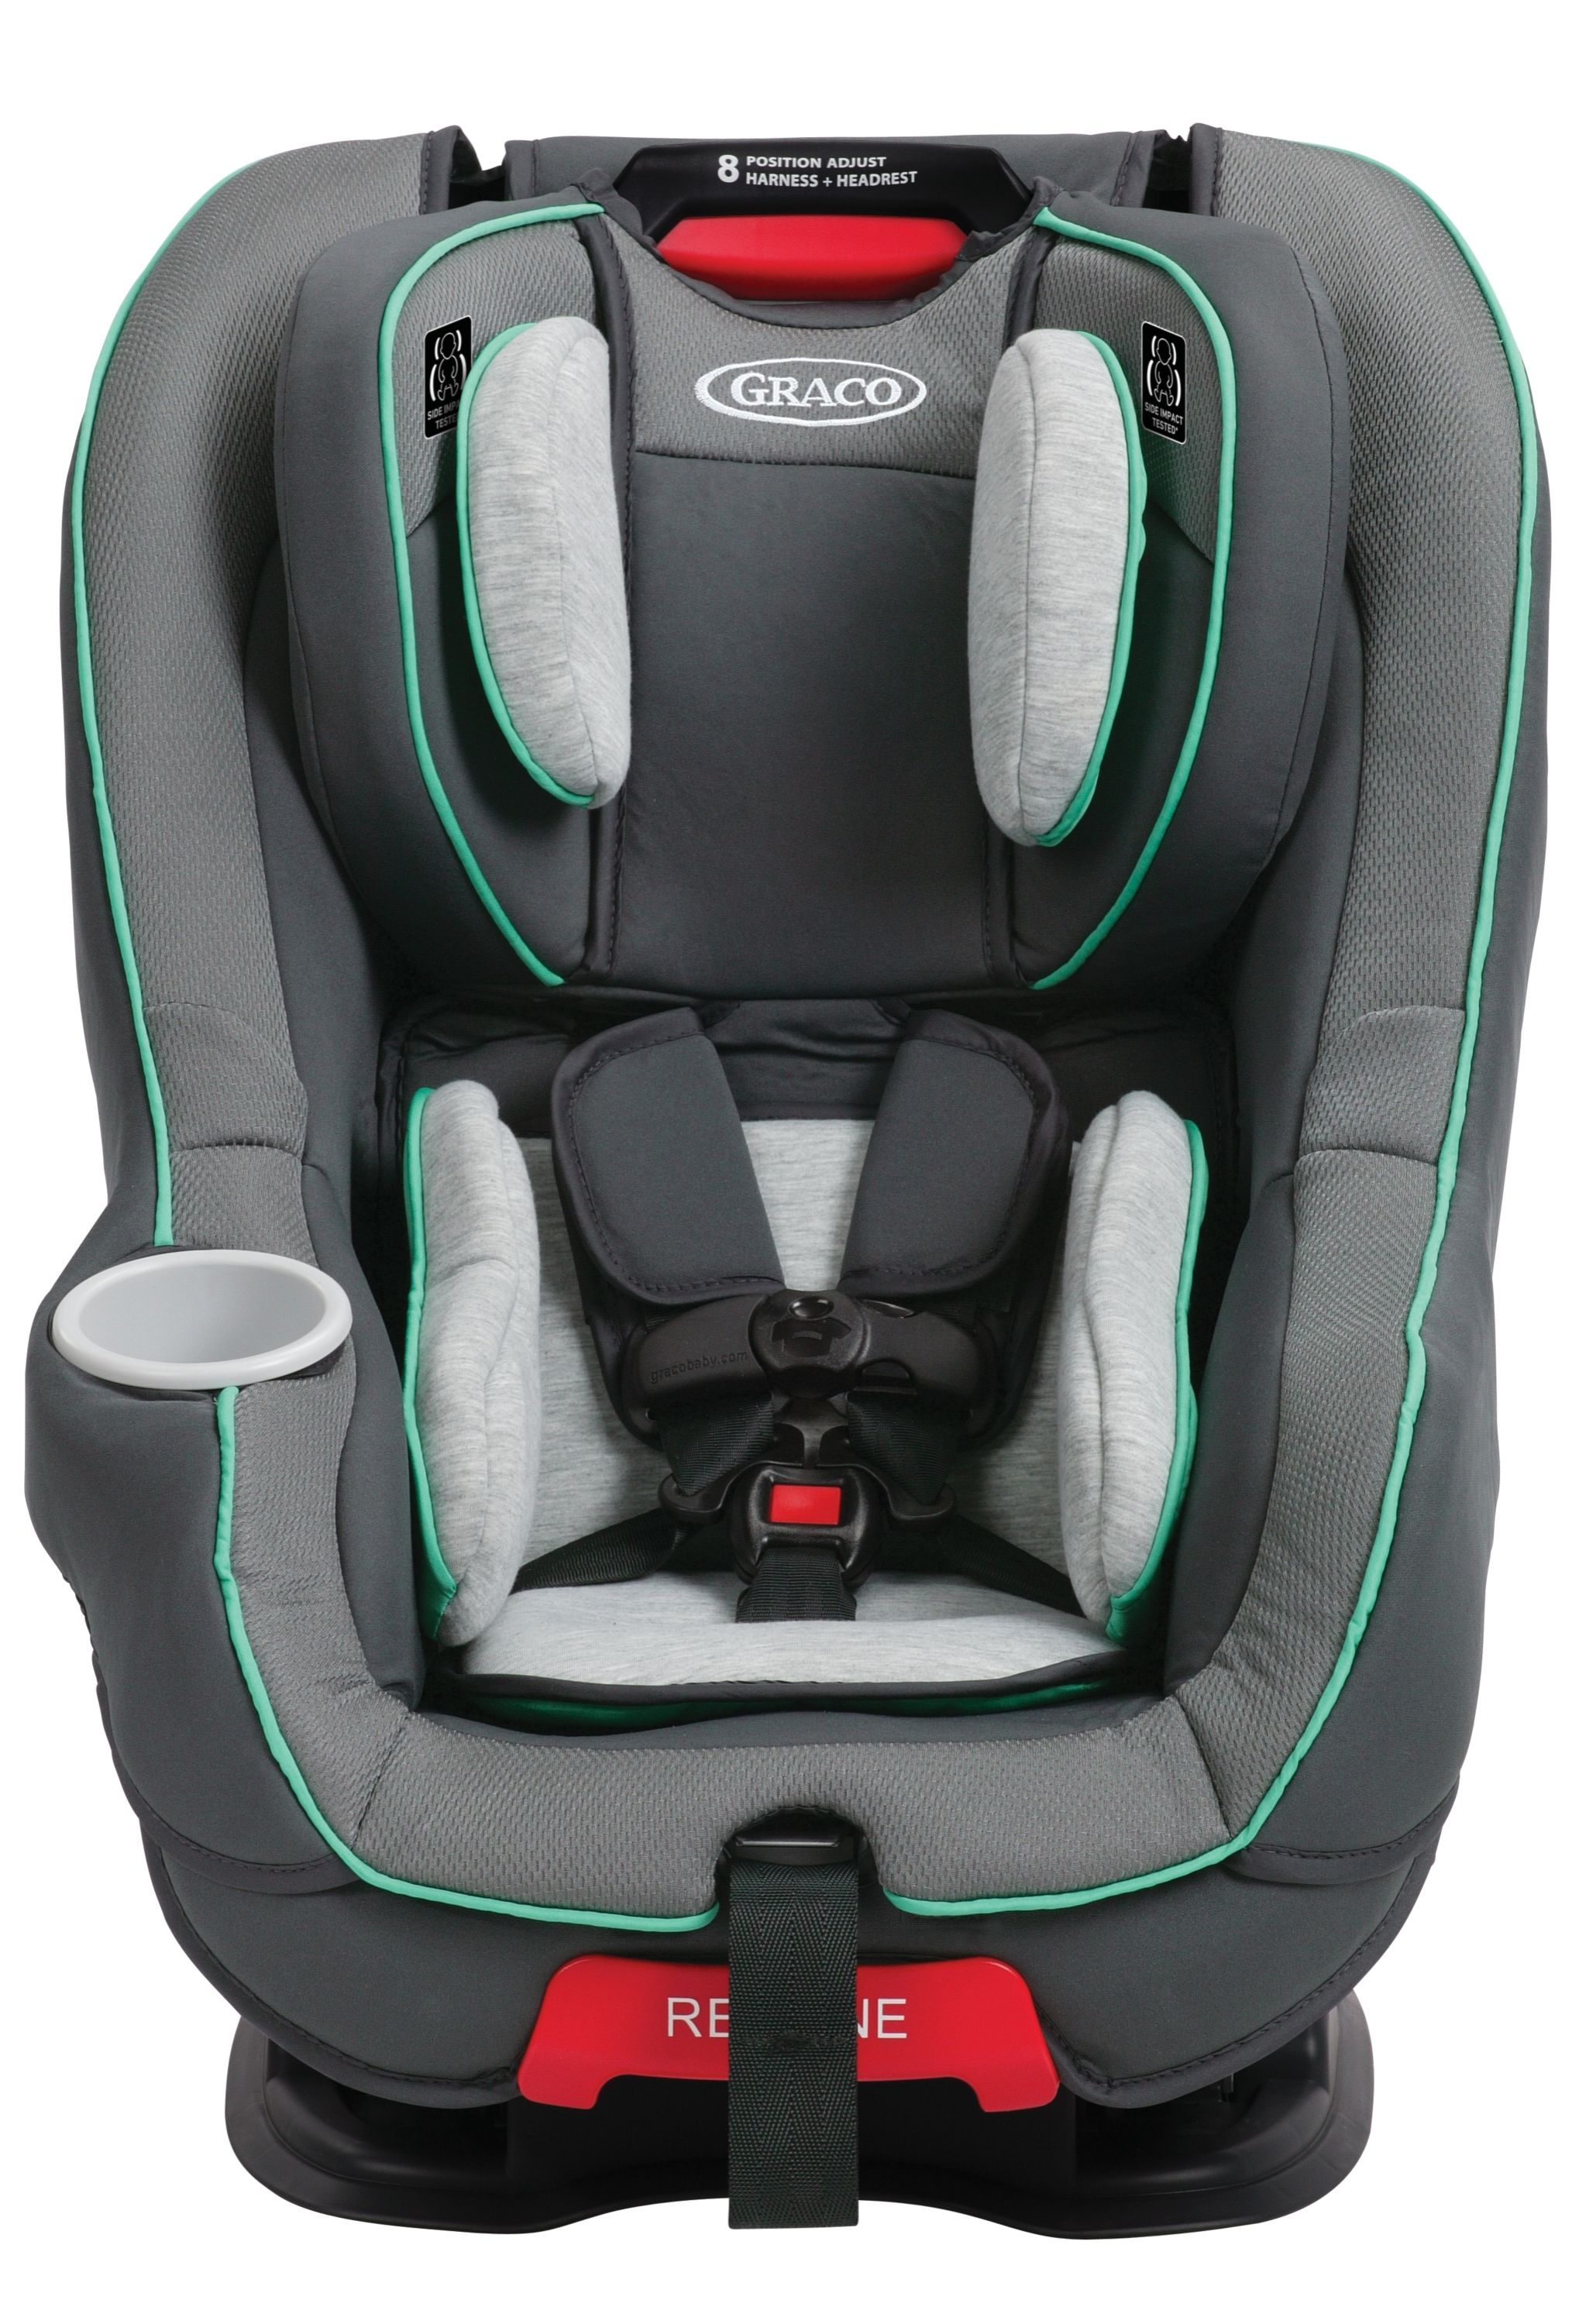 Graco S My Size 65 Convertible Car Seat In Isaac Easily